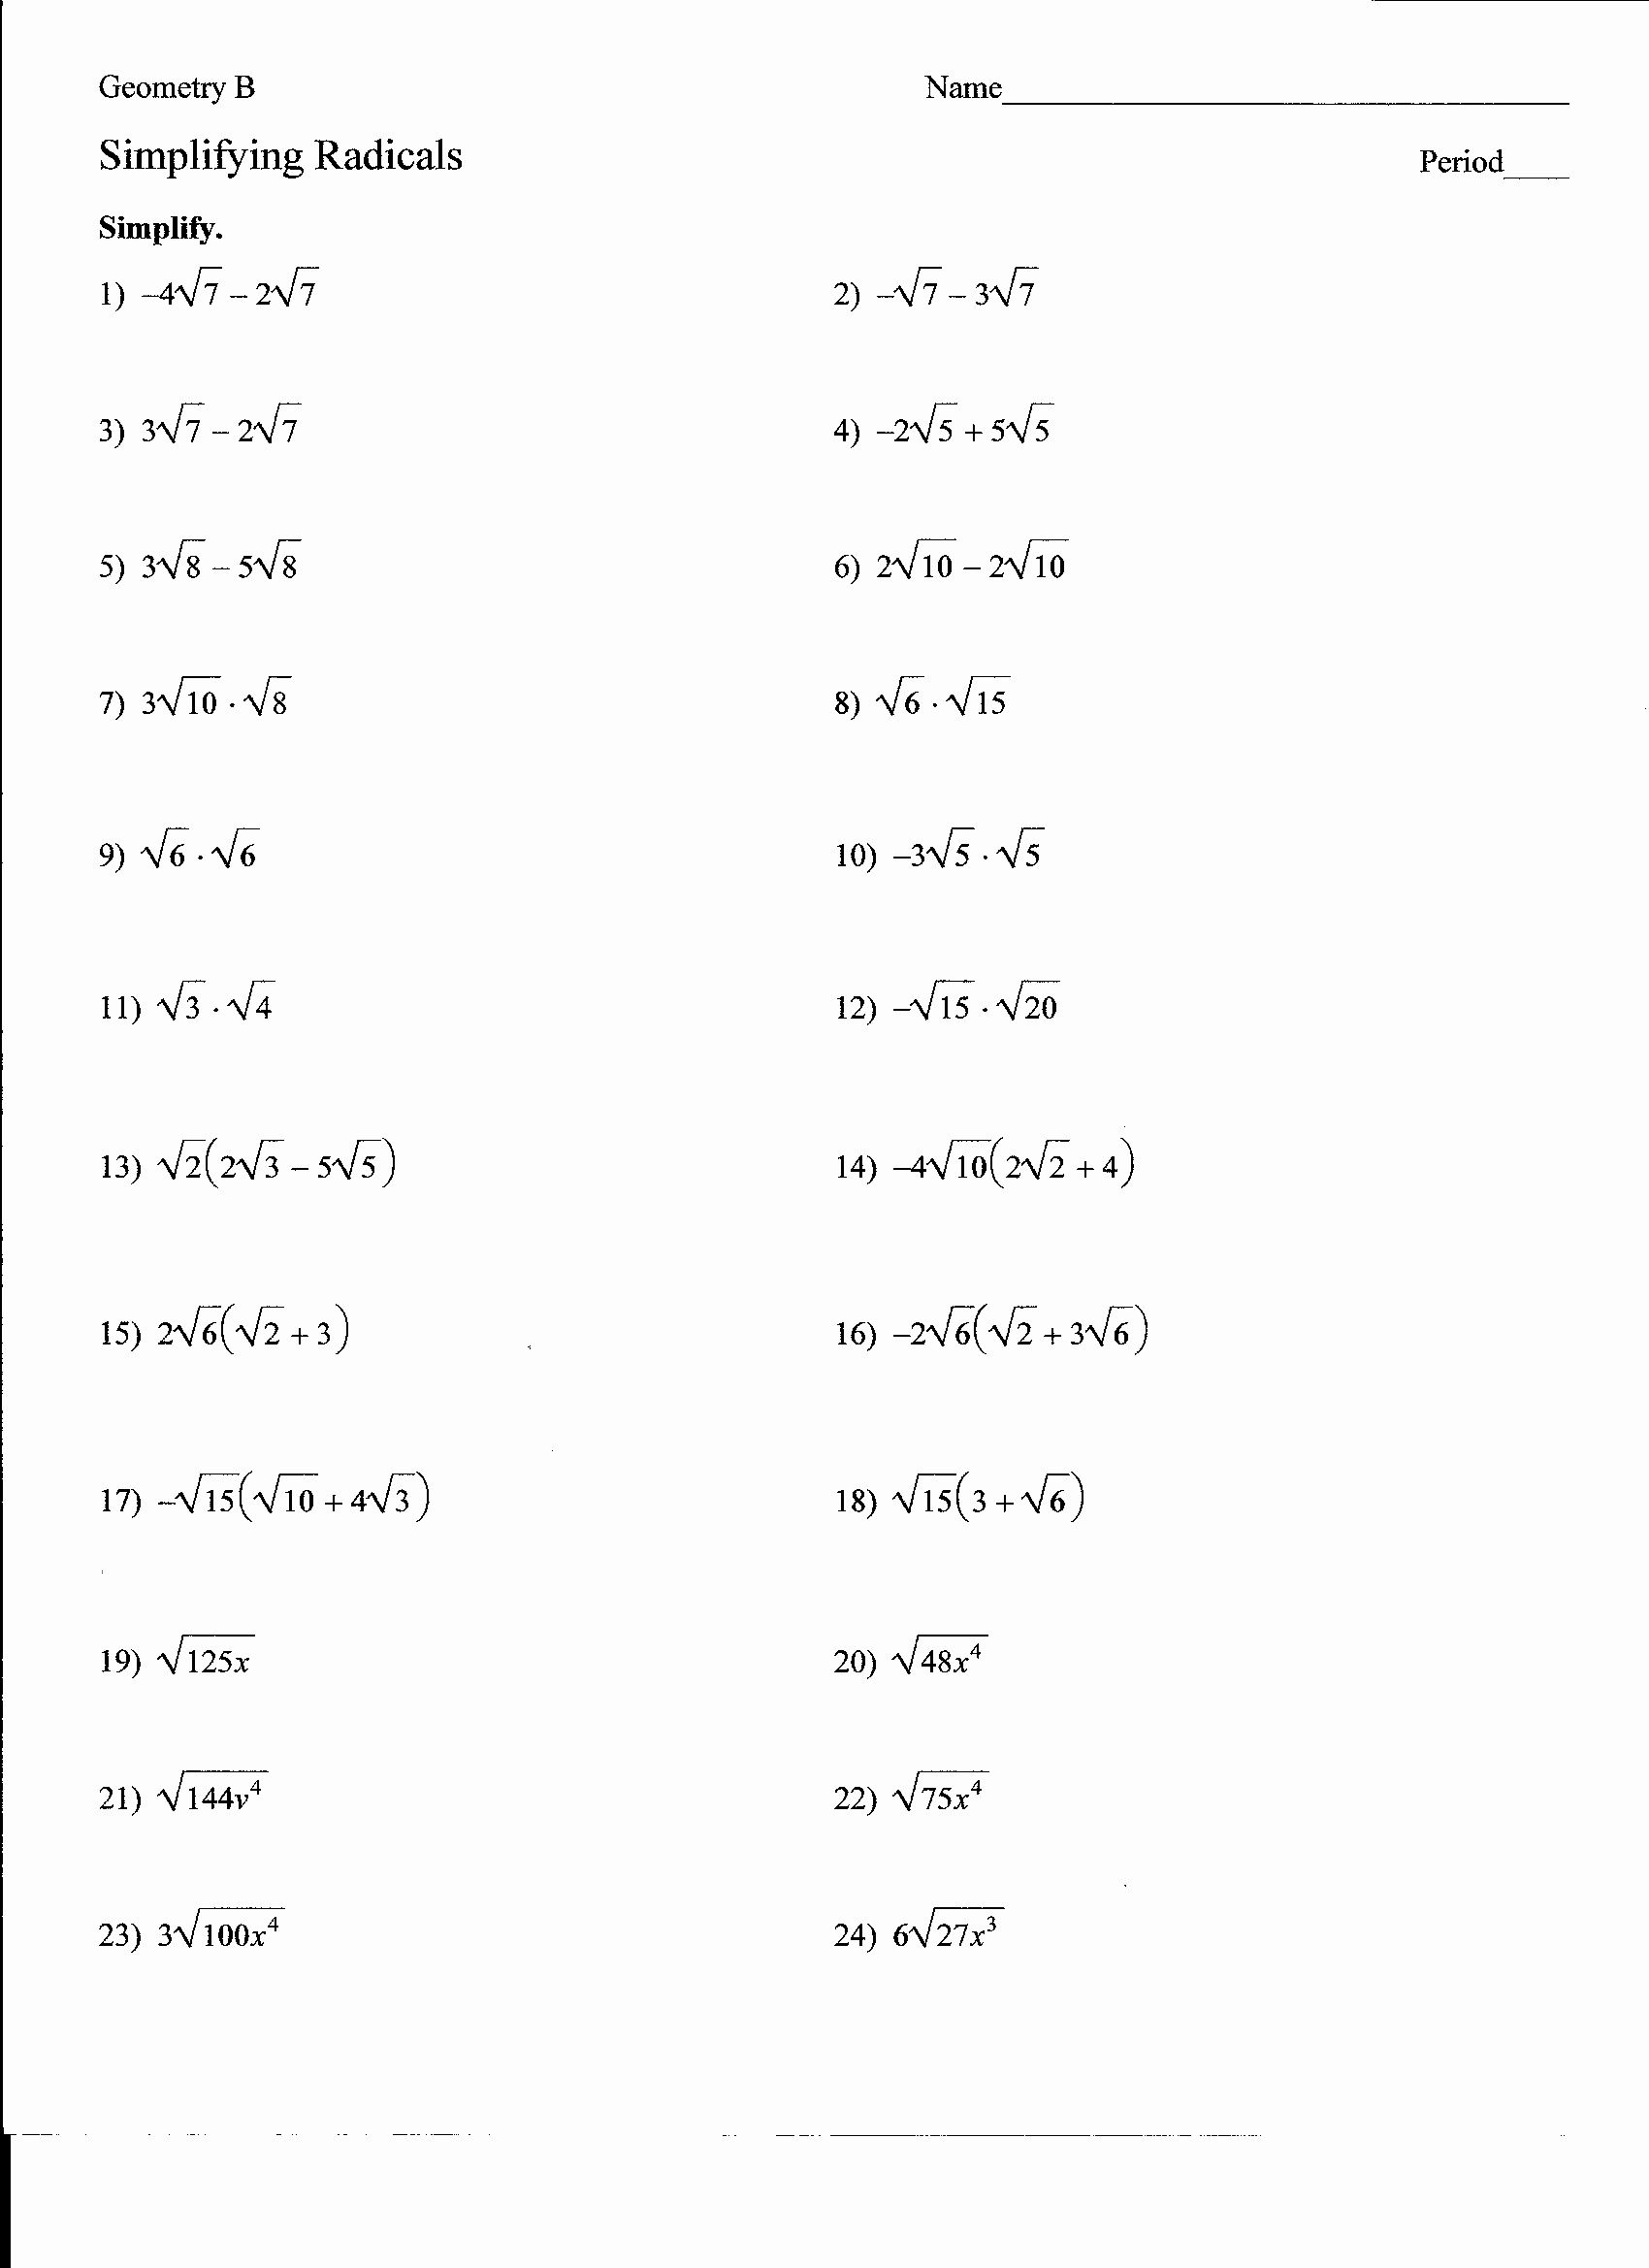 50 Simplifying Radicals Worksheet 1 In